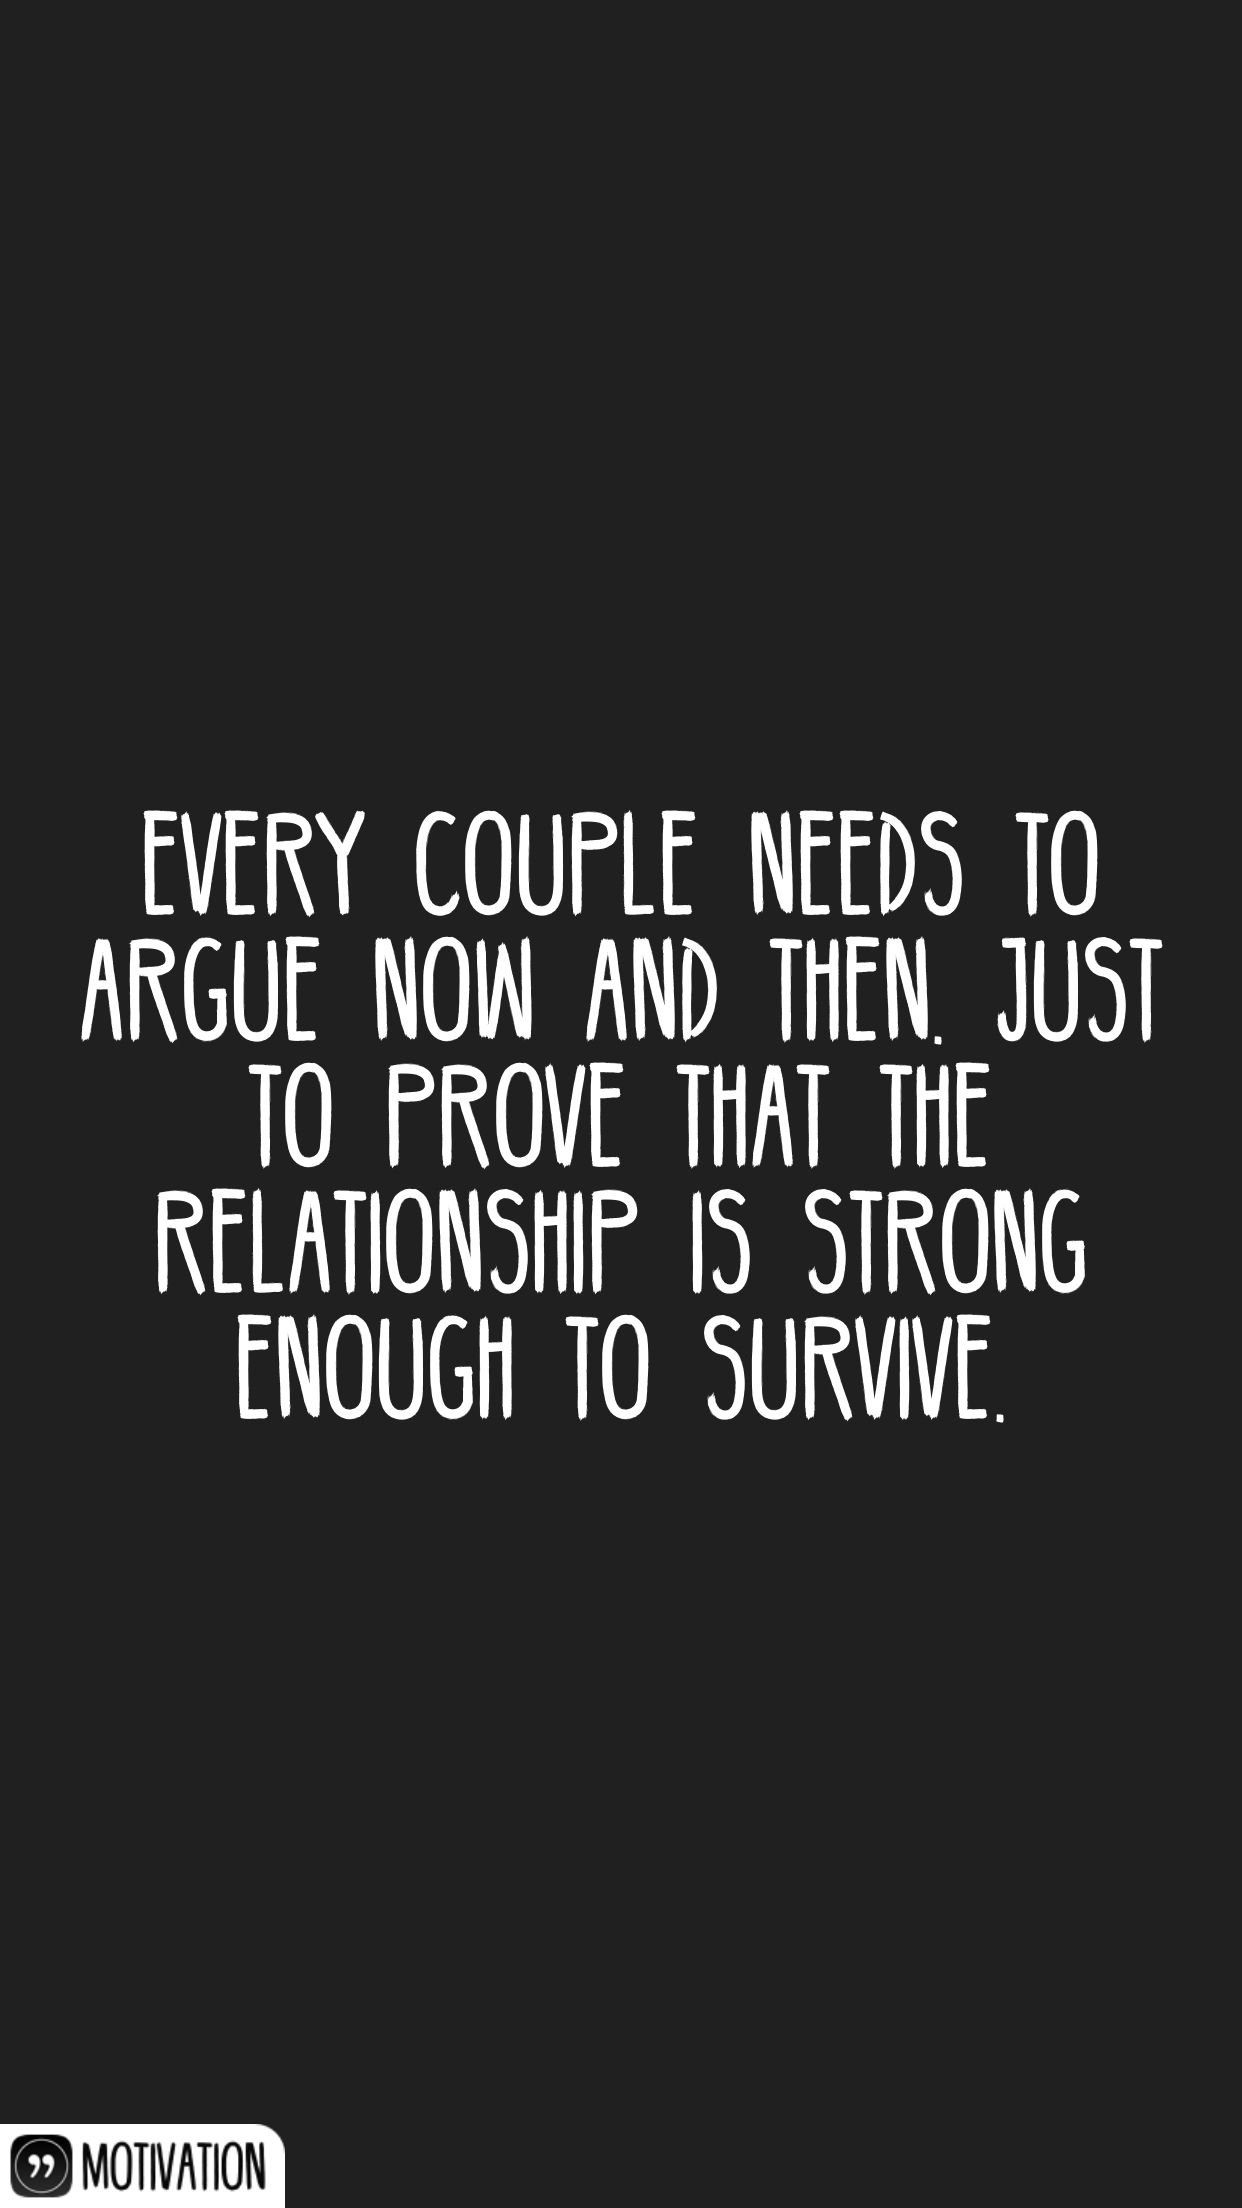 Quotes About Strong Relationship Every Couple Needs To Argue Now And Thenjust To Prove That The